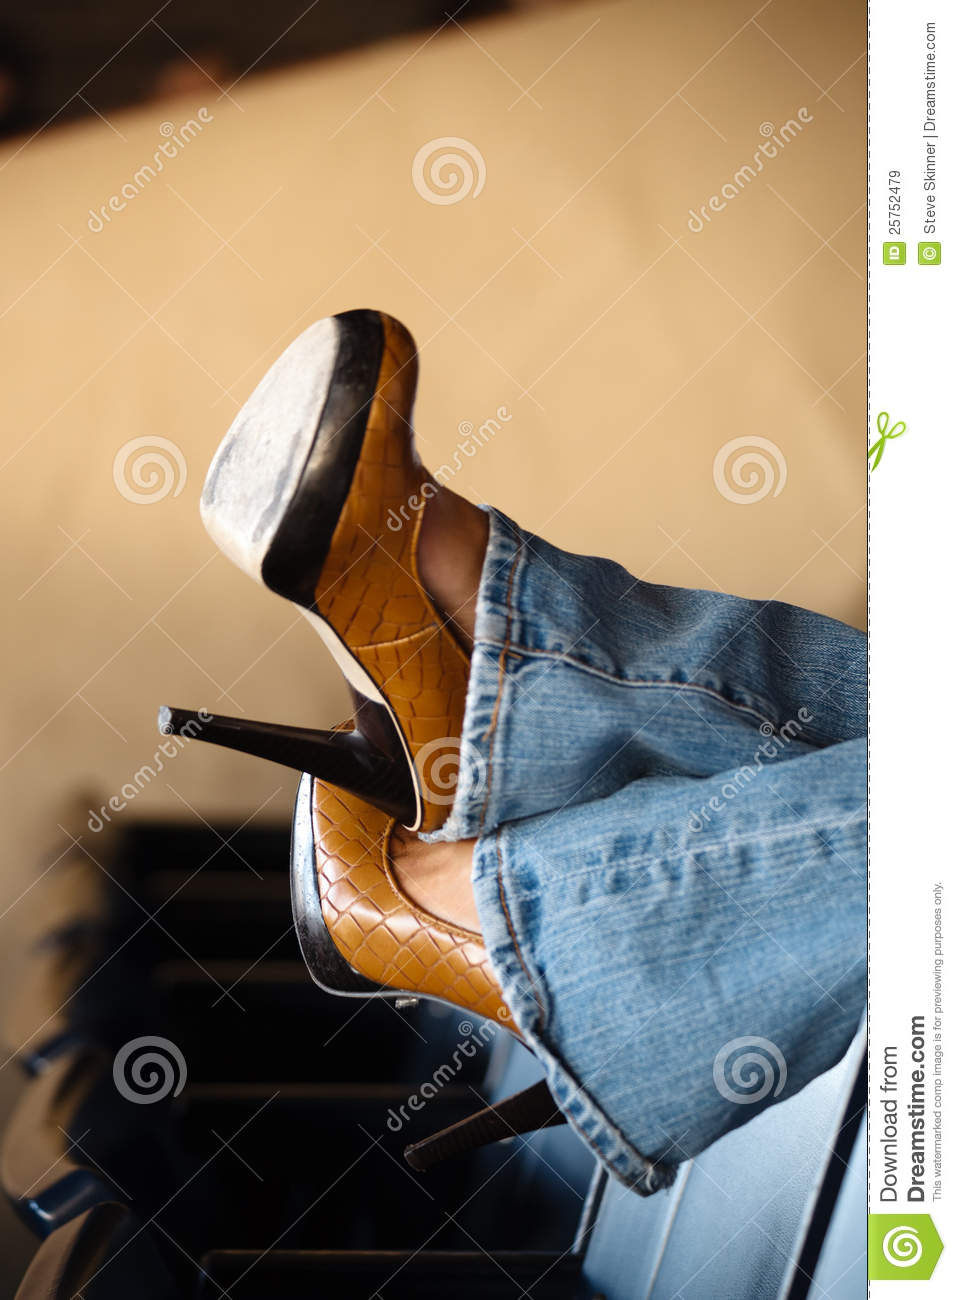 High heels and blue jeans stock image. Image of shoe - 25752479